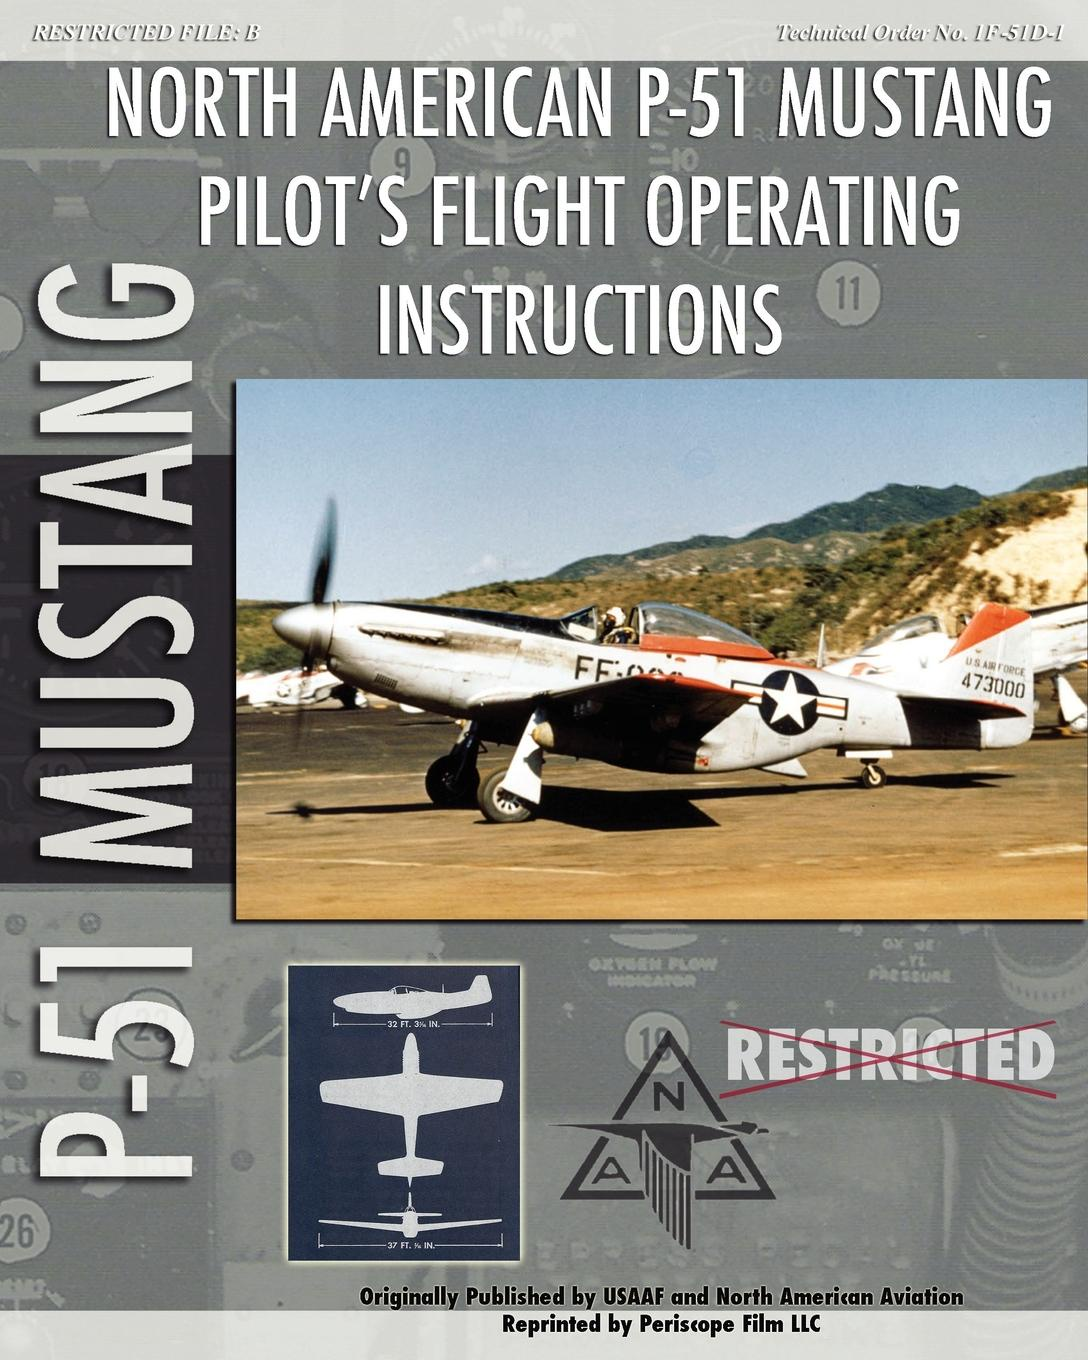 United States Army Air Force P-51 Mustang Pilot's Flight Operating Instructions